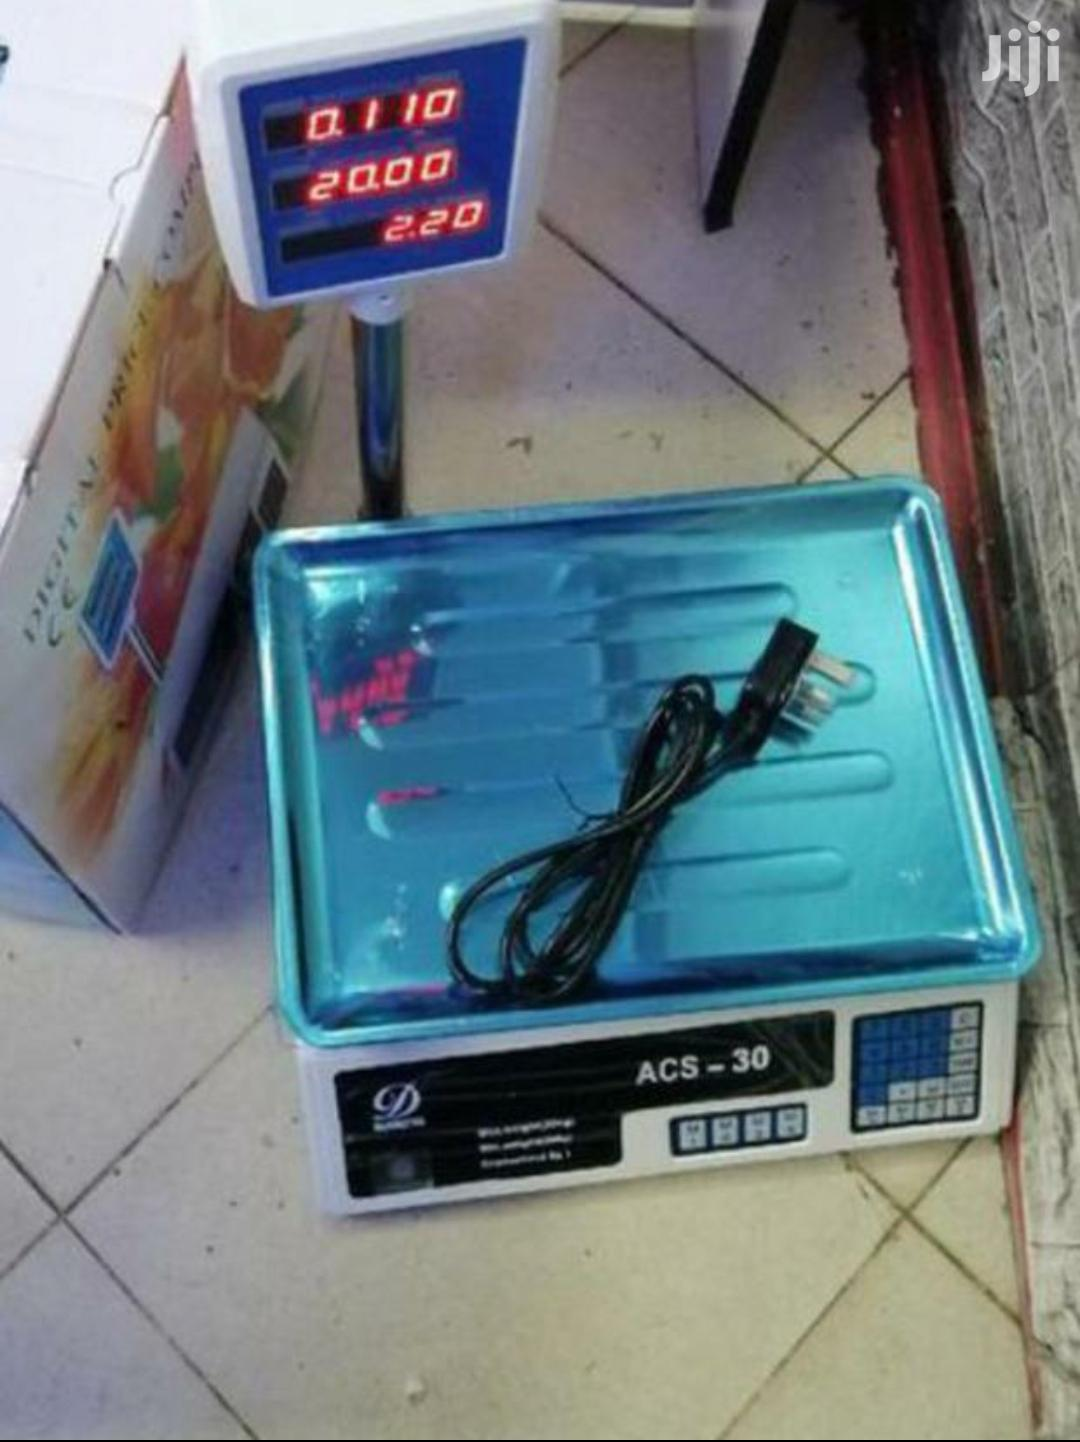 Butchery Weighing Scale